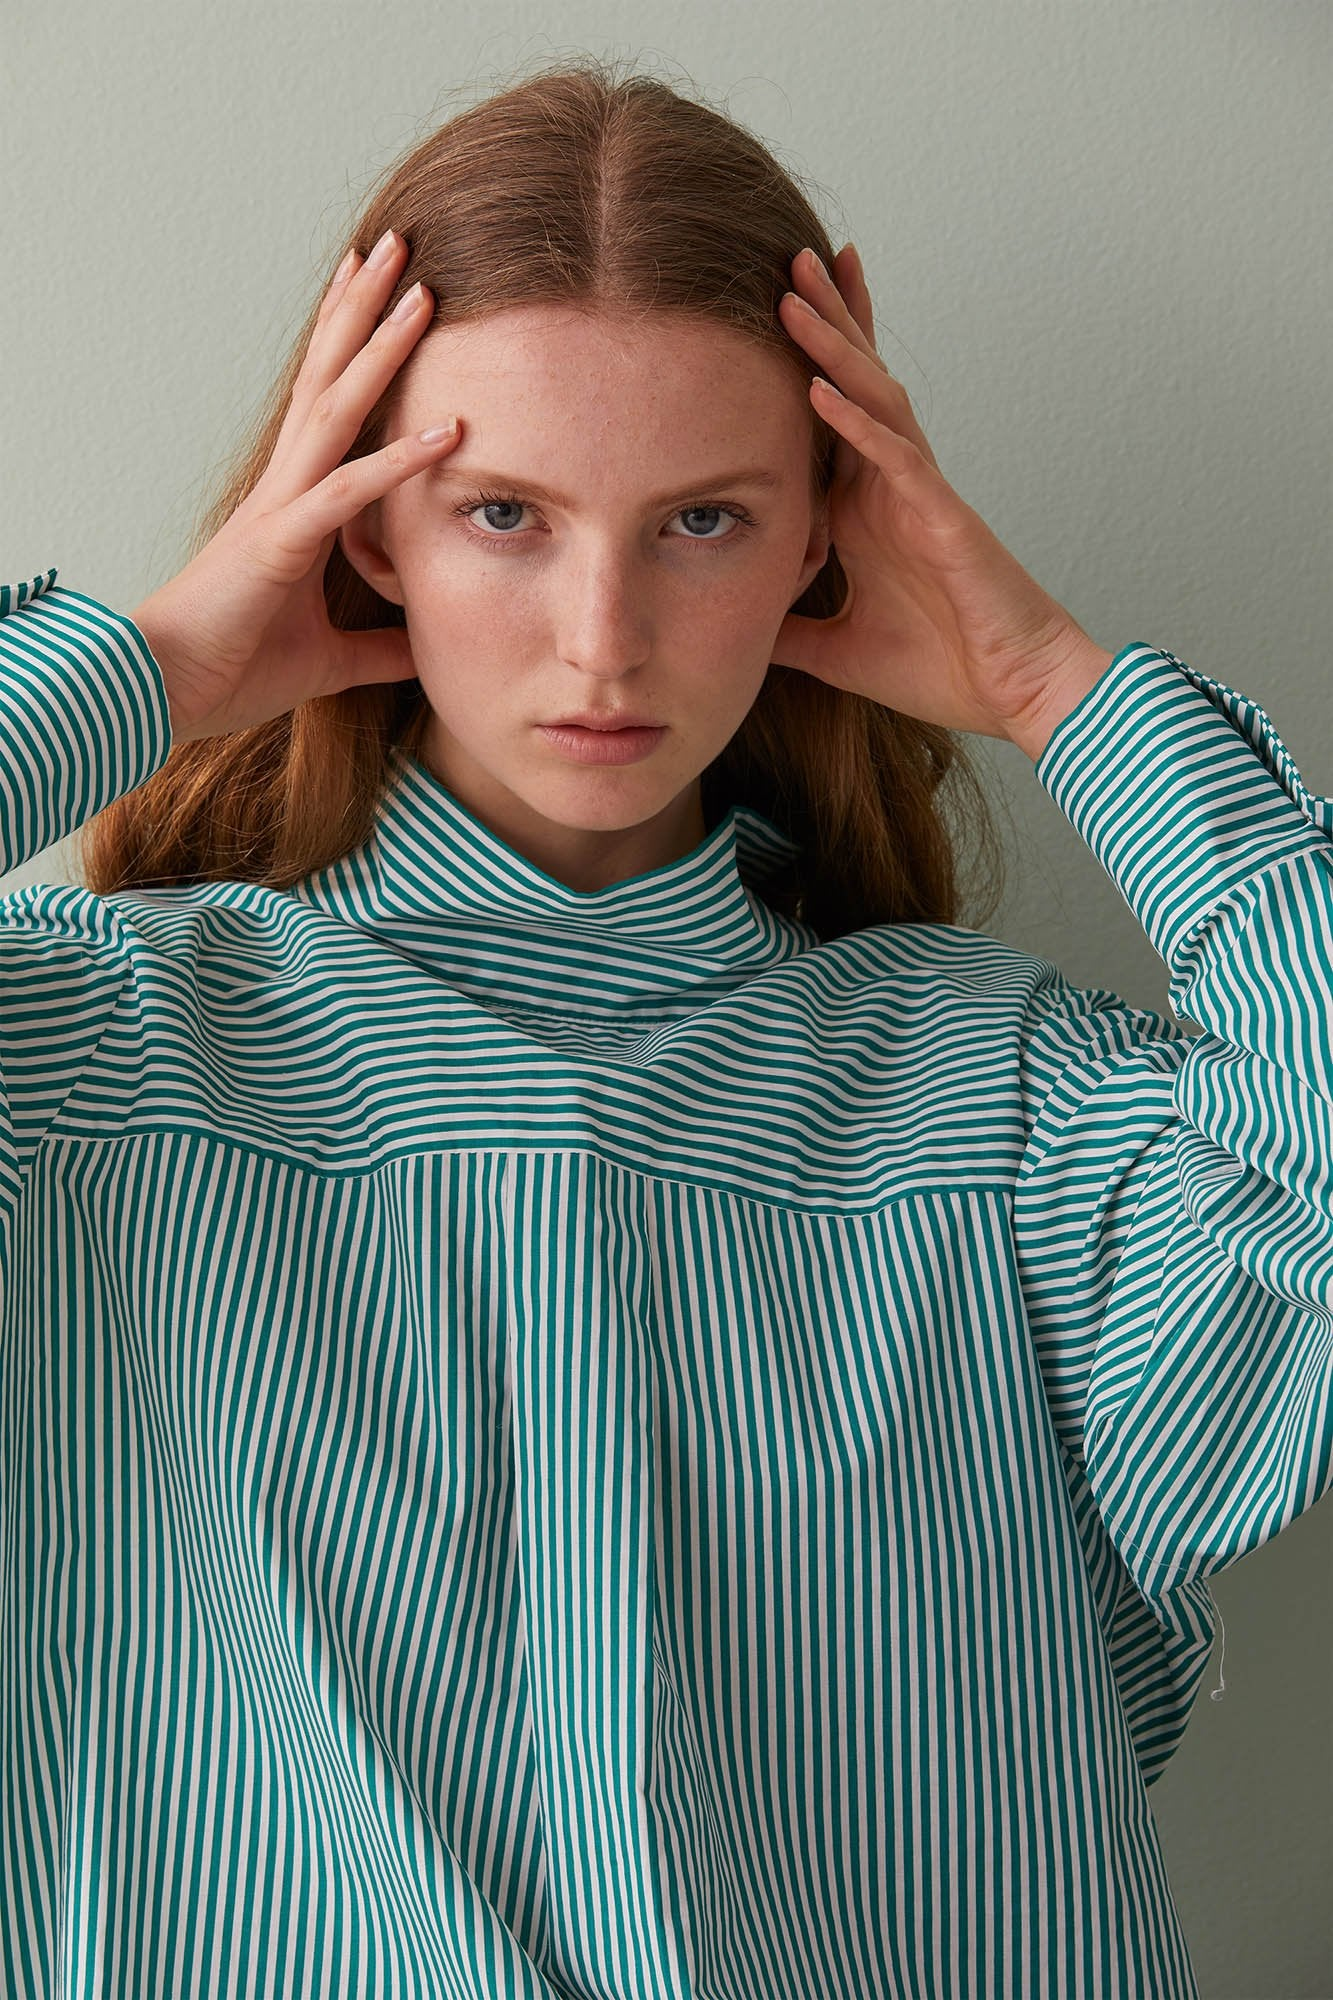 NZ Fashion Clothing Boutique gregorythelabel Gregory AW19 Dasha Top Jungle/Ivory Stripe Shirt Made in NZ